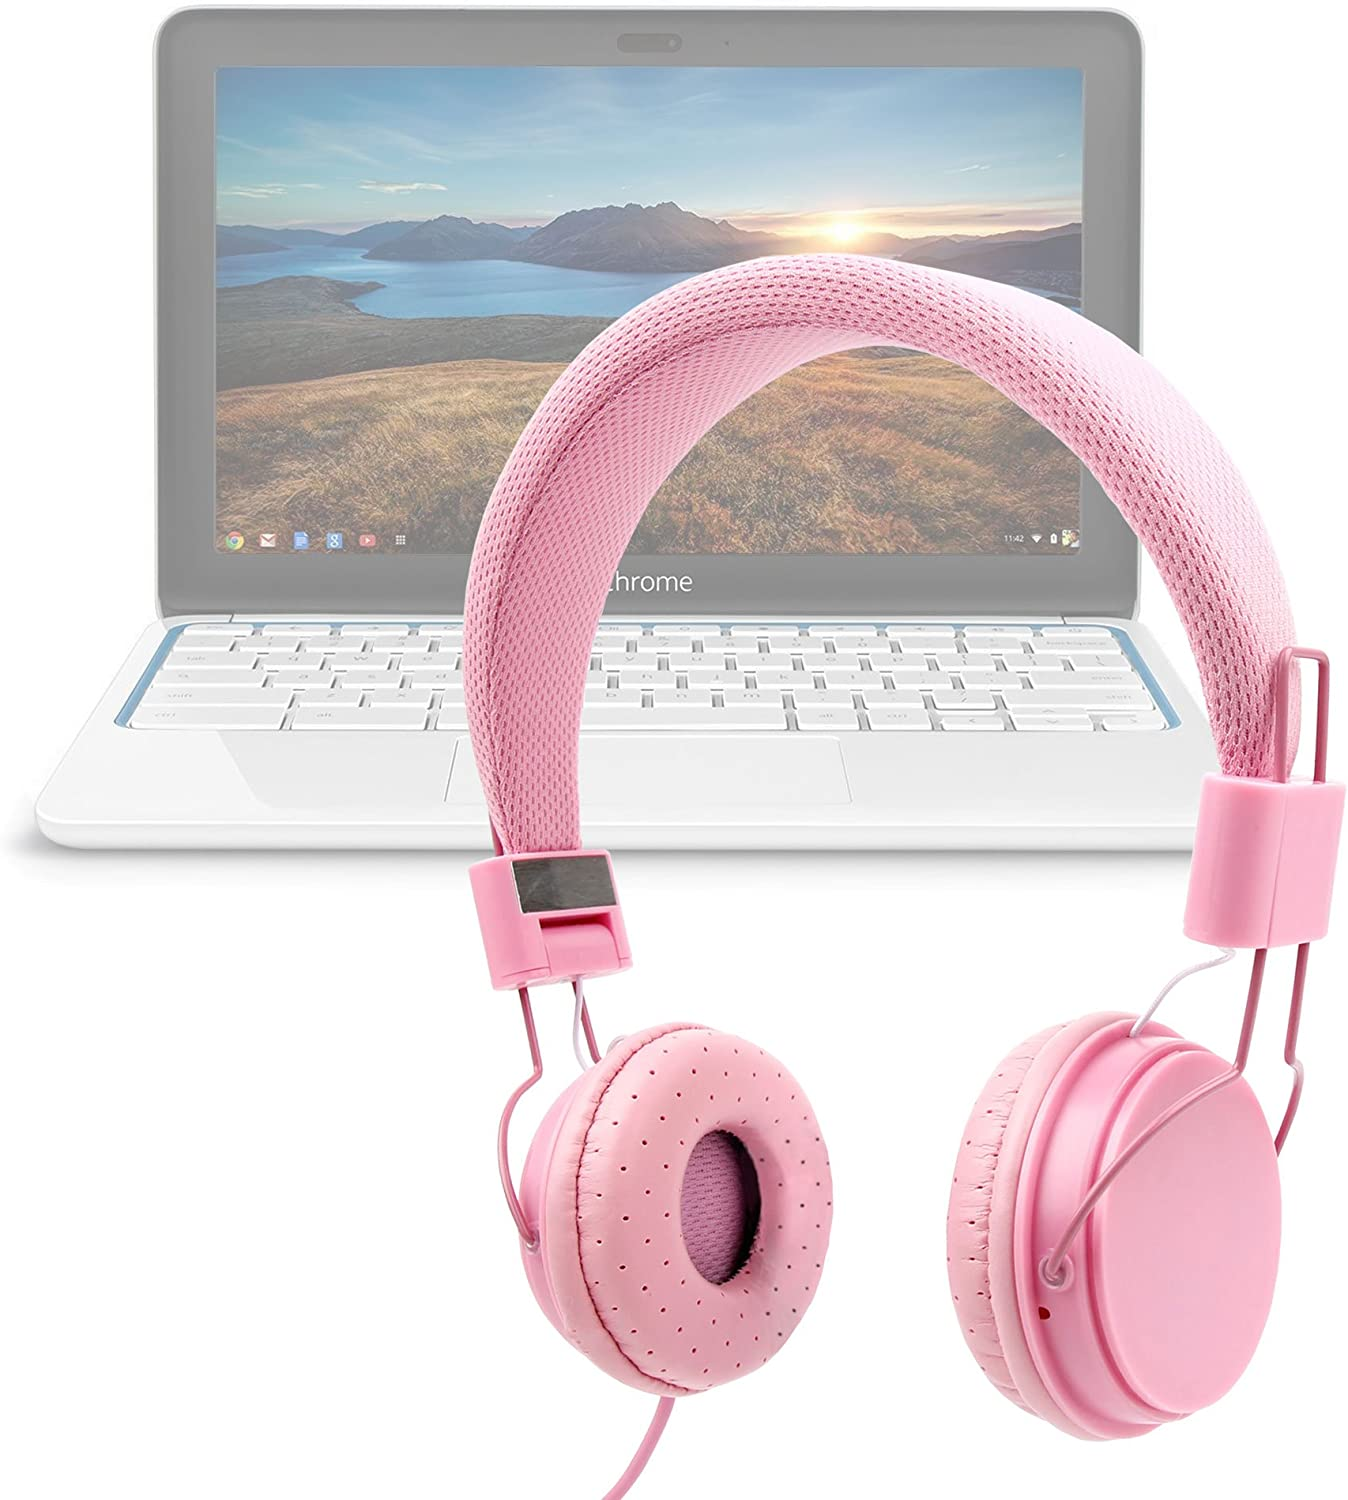 Amazon Com Duragadget Pink Ultra Stylish Kids Fashion Headphones W Padded Design Microphone Suitable For Use With Hp Chromebook 11 G2 Exynos 5250 11 6 Inch Laptop